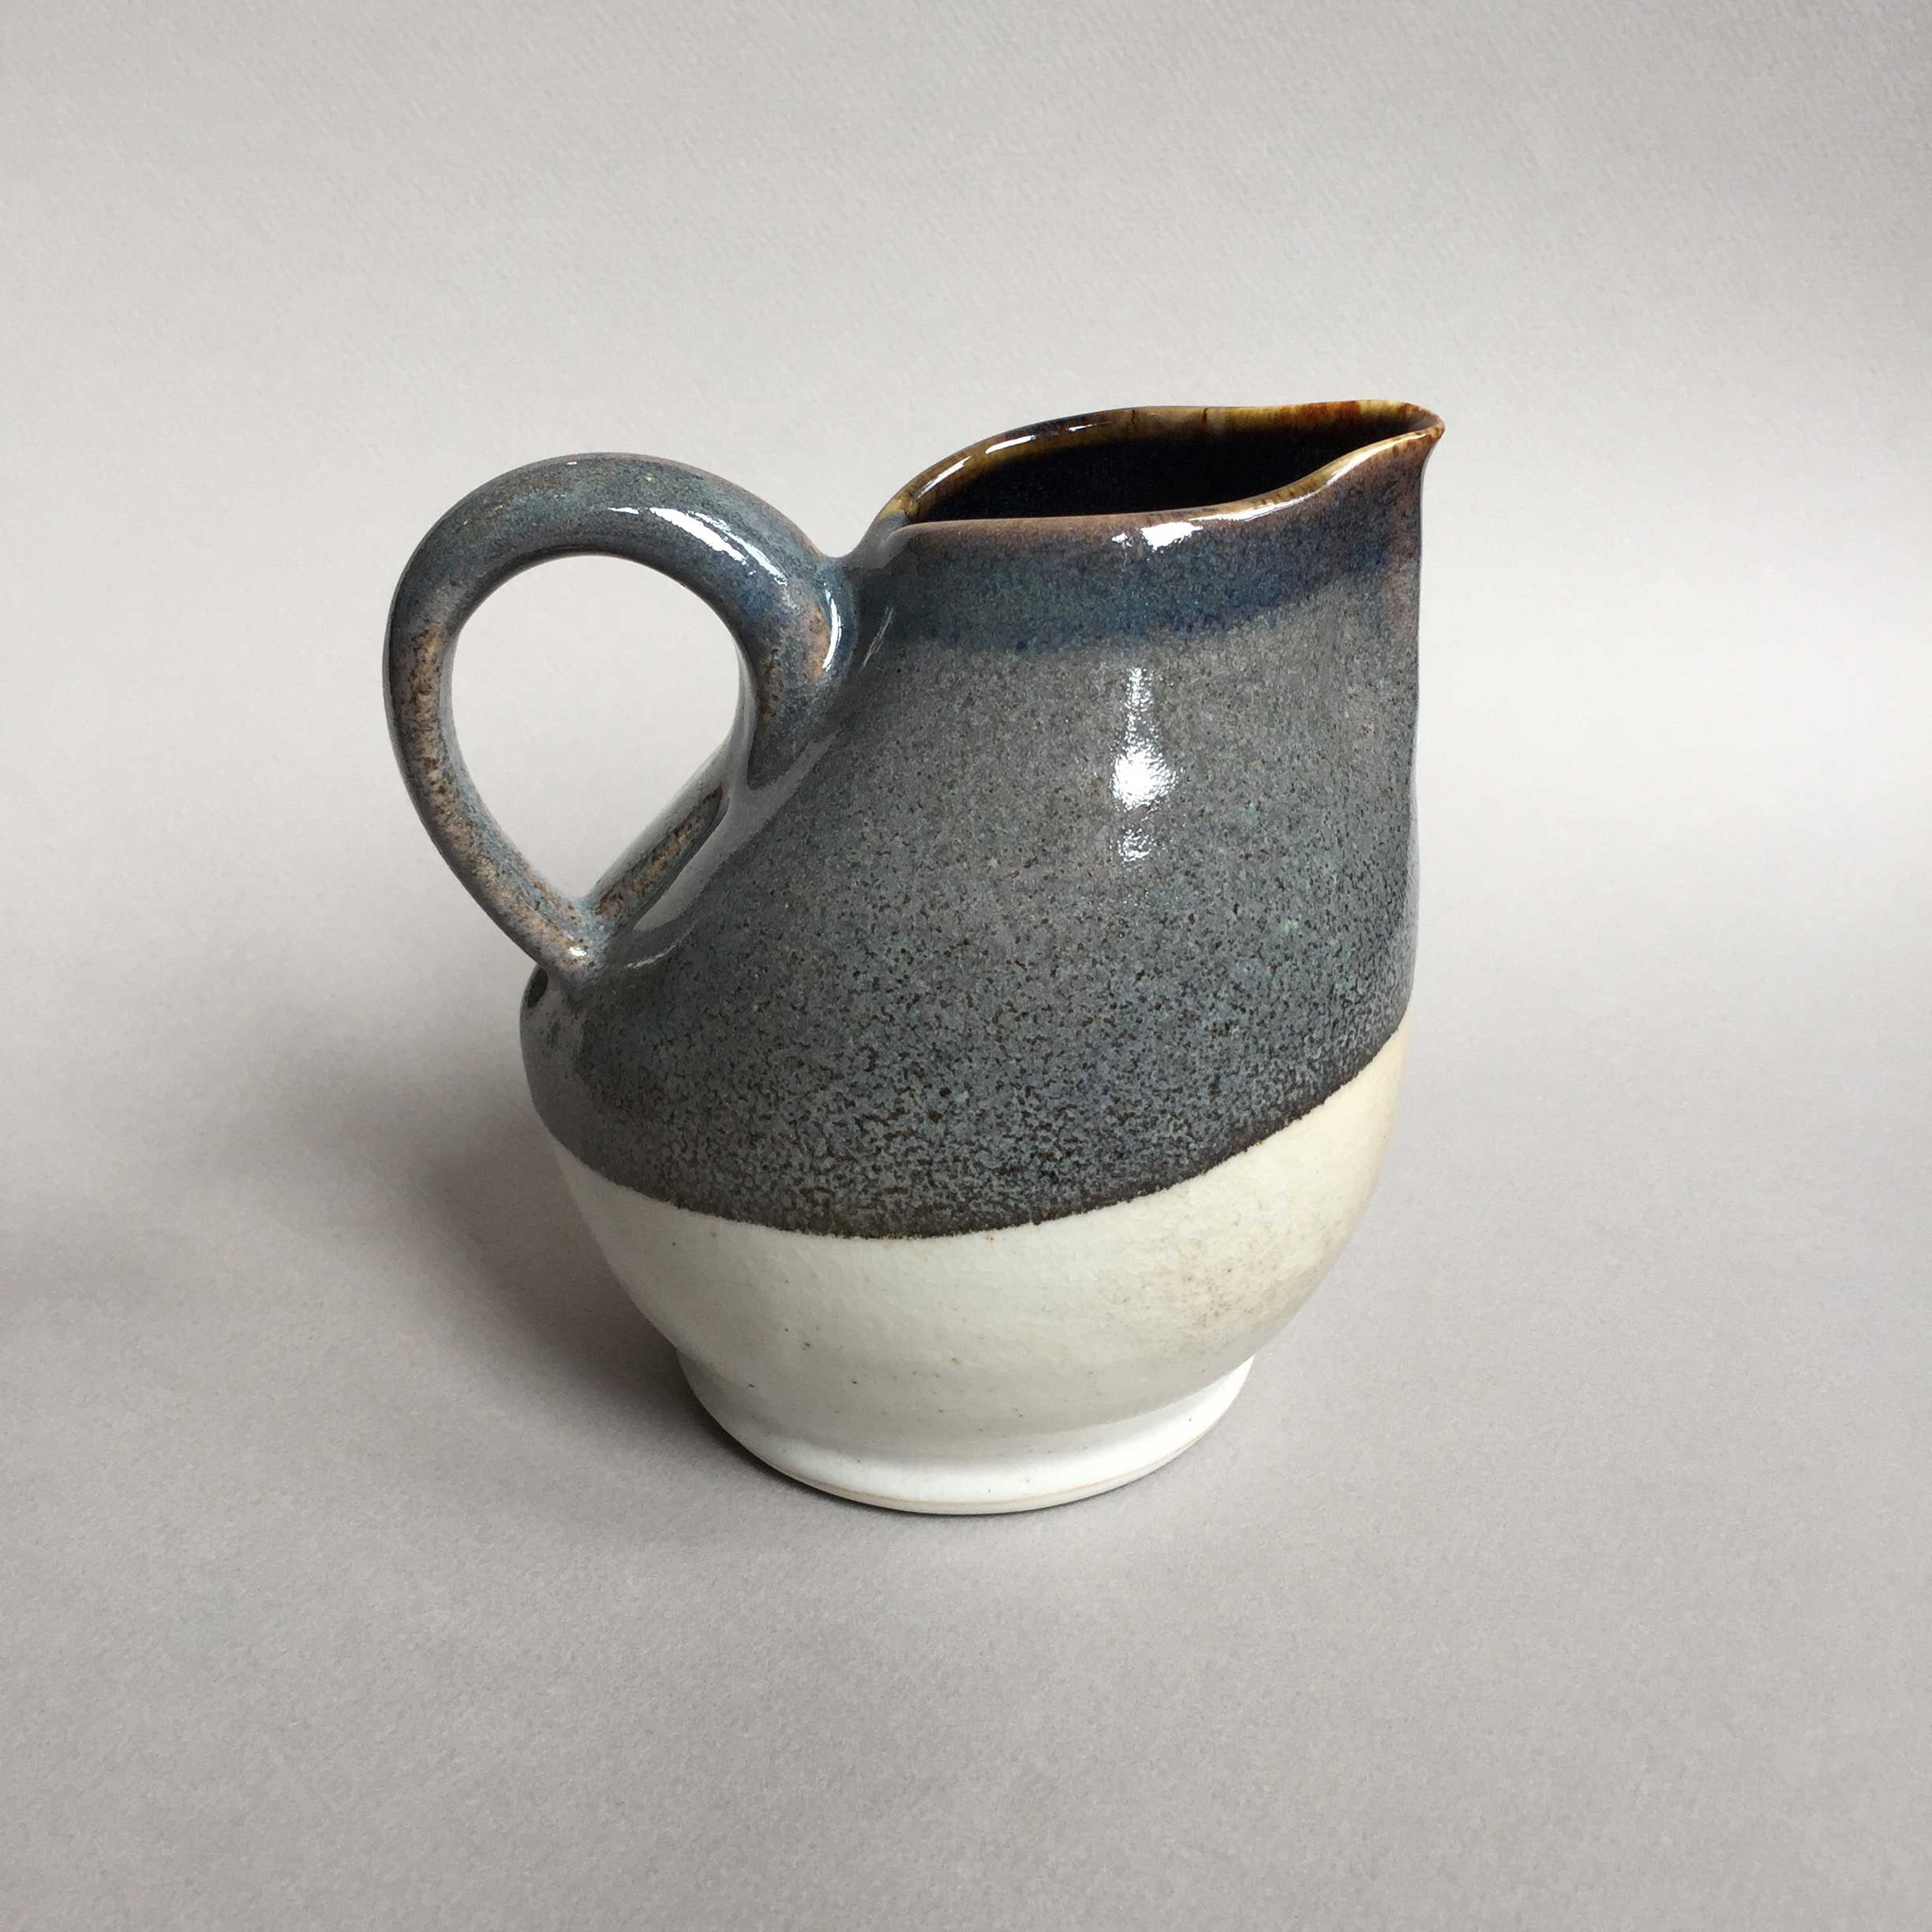 Clay: Small Pitcher